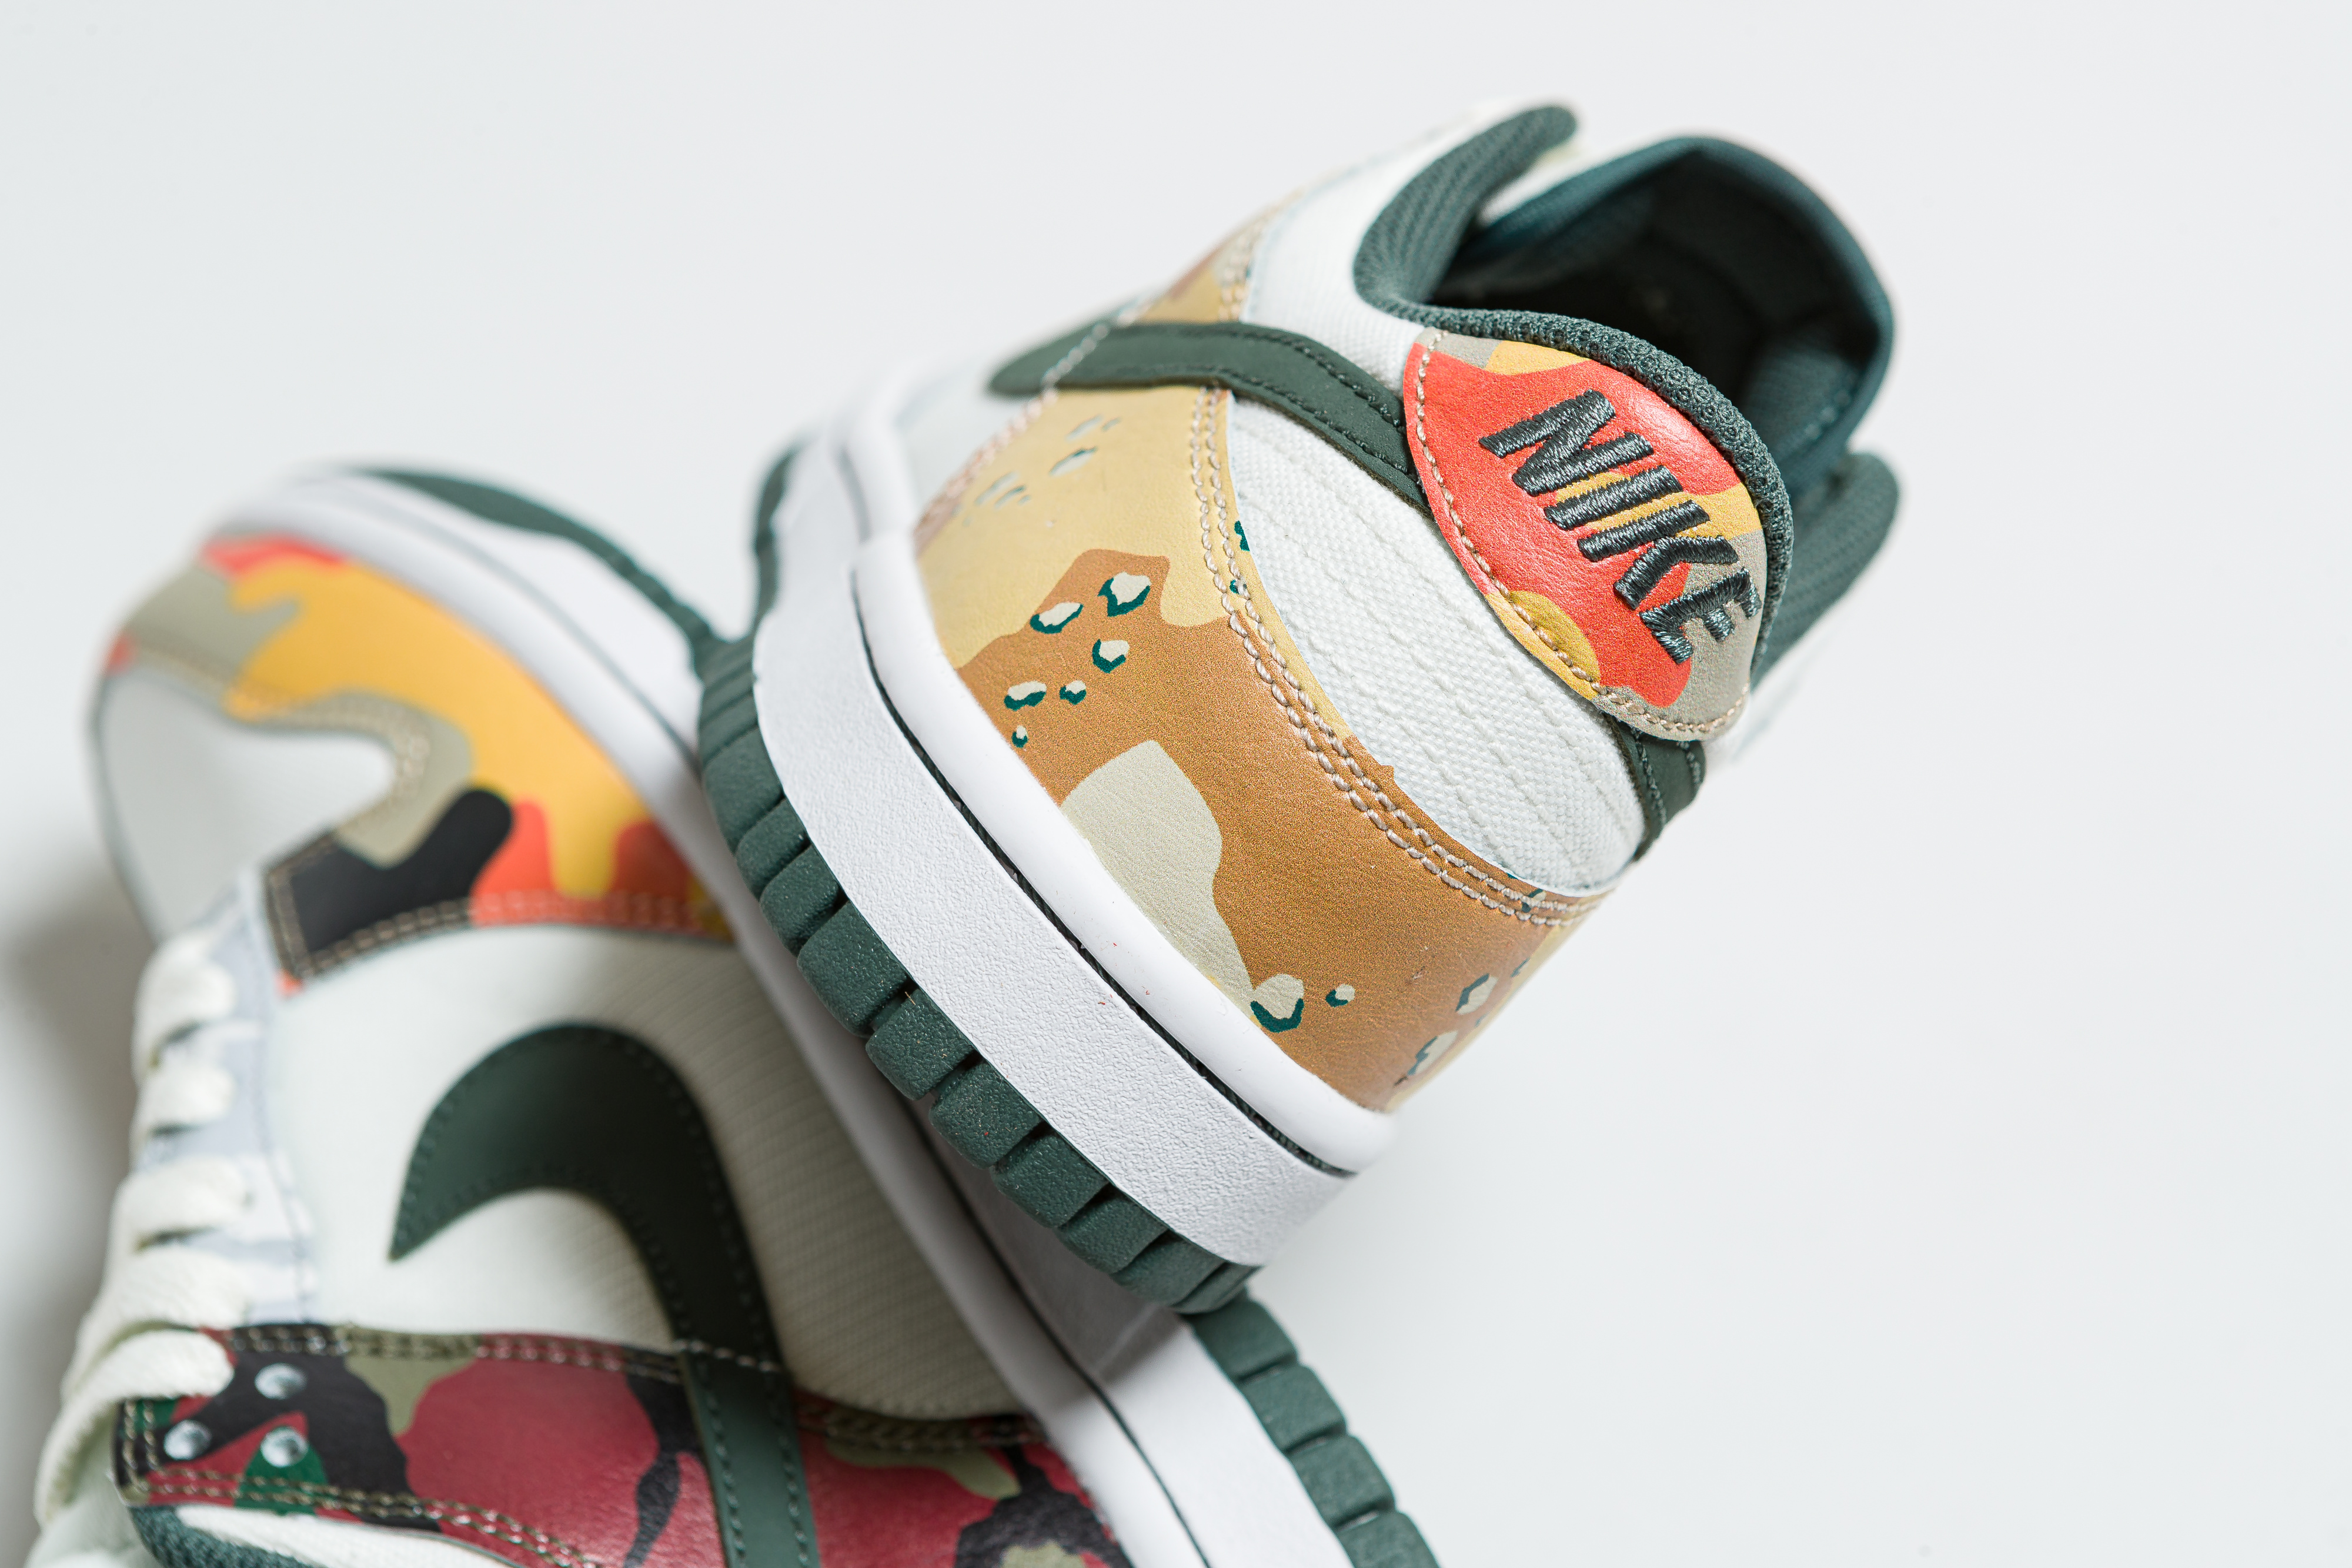 Nike - Dunk Low SE (GS) - Sail/Vintage Green - Up There